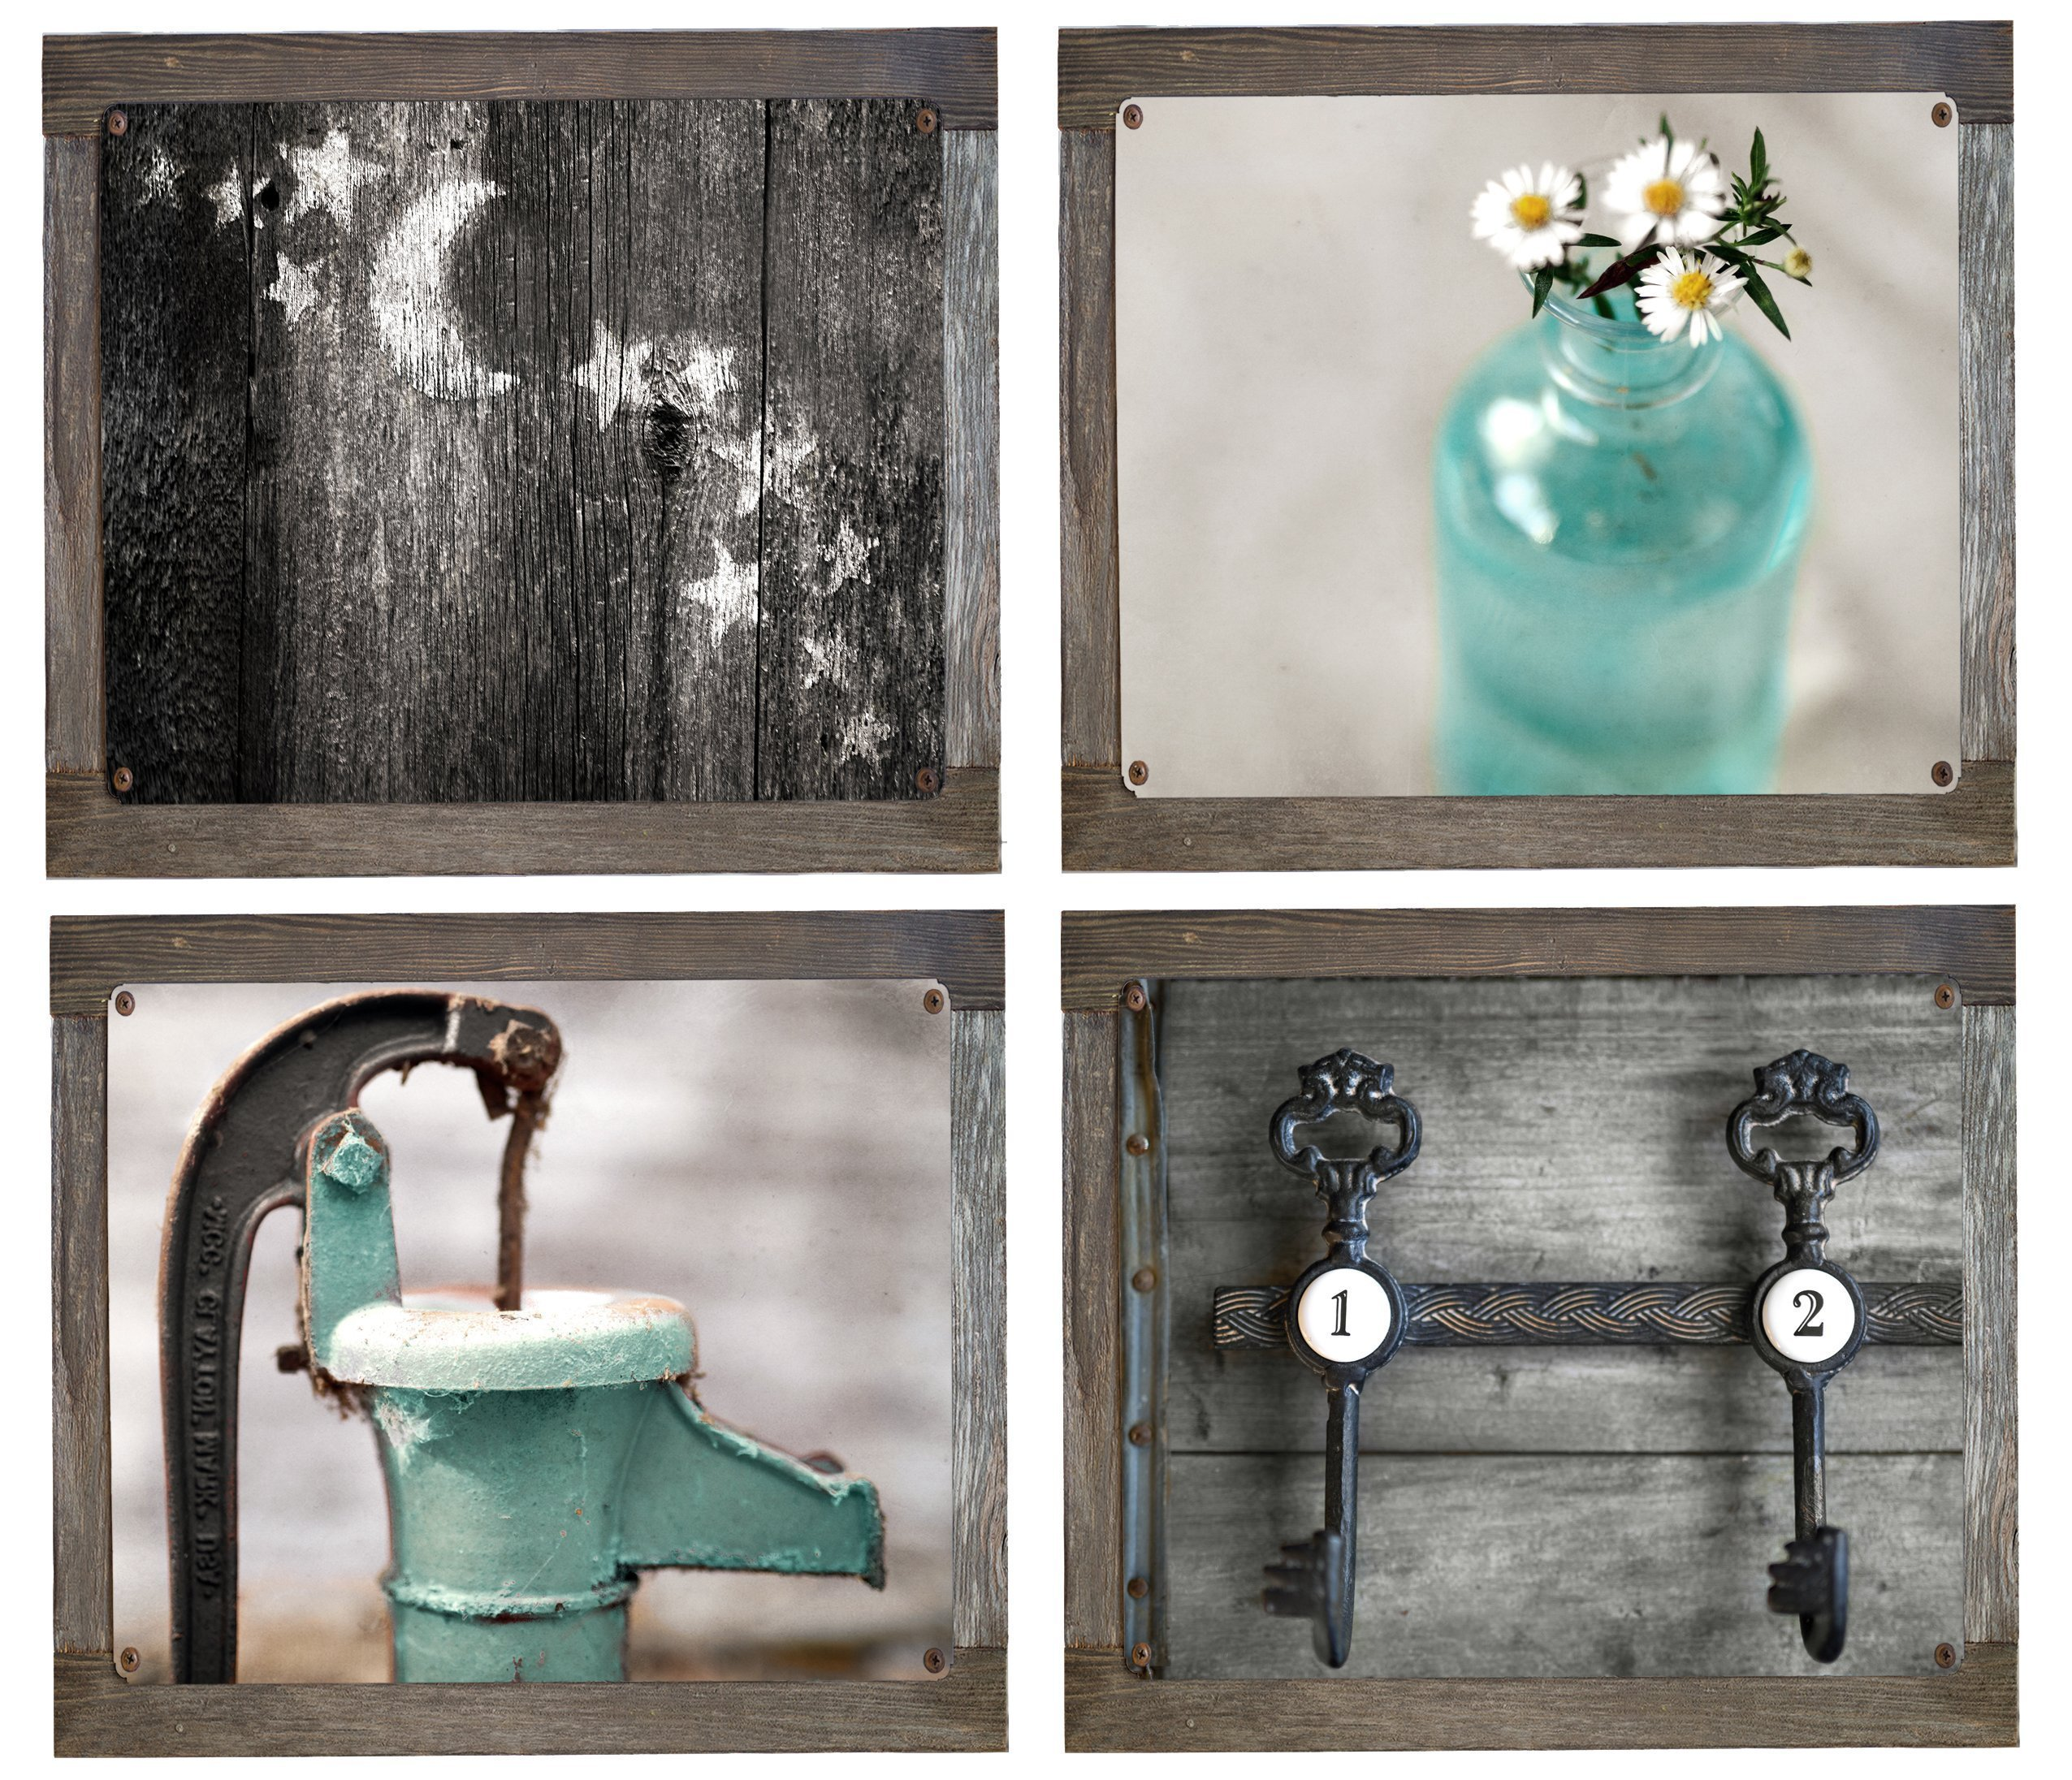 Rustic Bath 4 Metal Print Set with Barnwood Frames- 12''X12'', Country Decor, Primative, Rustic Bath, Farmhouse, Teal, Aqua by Photo Artistry